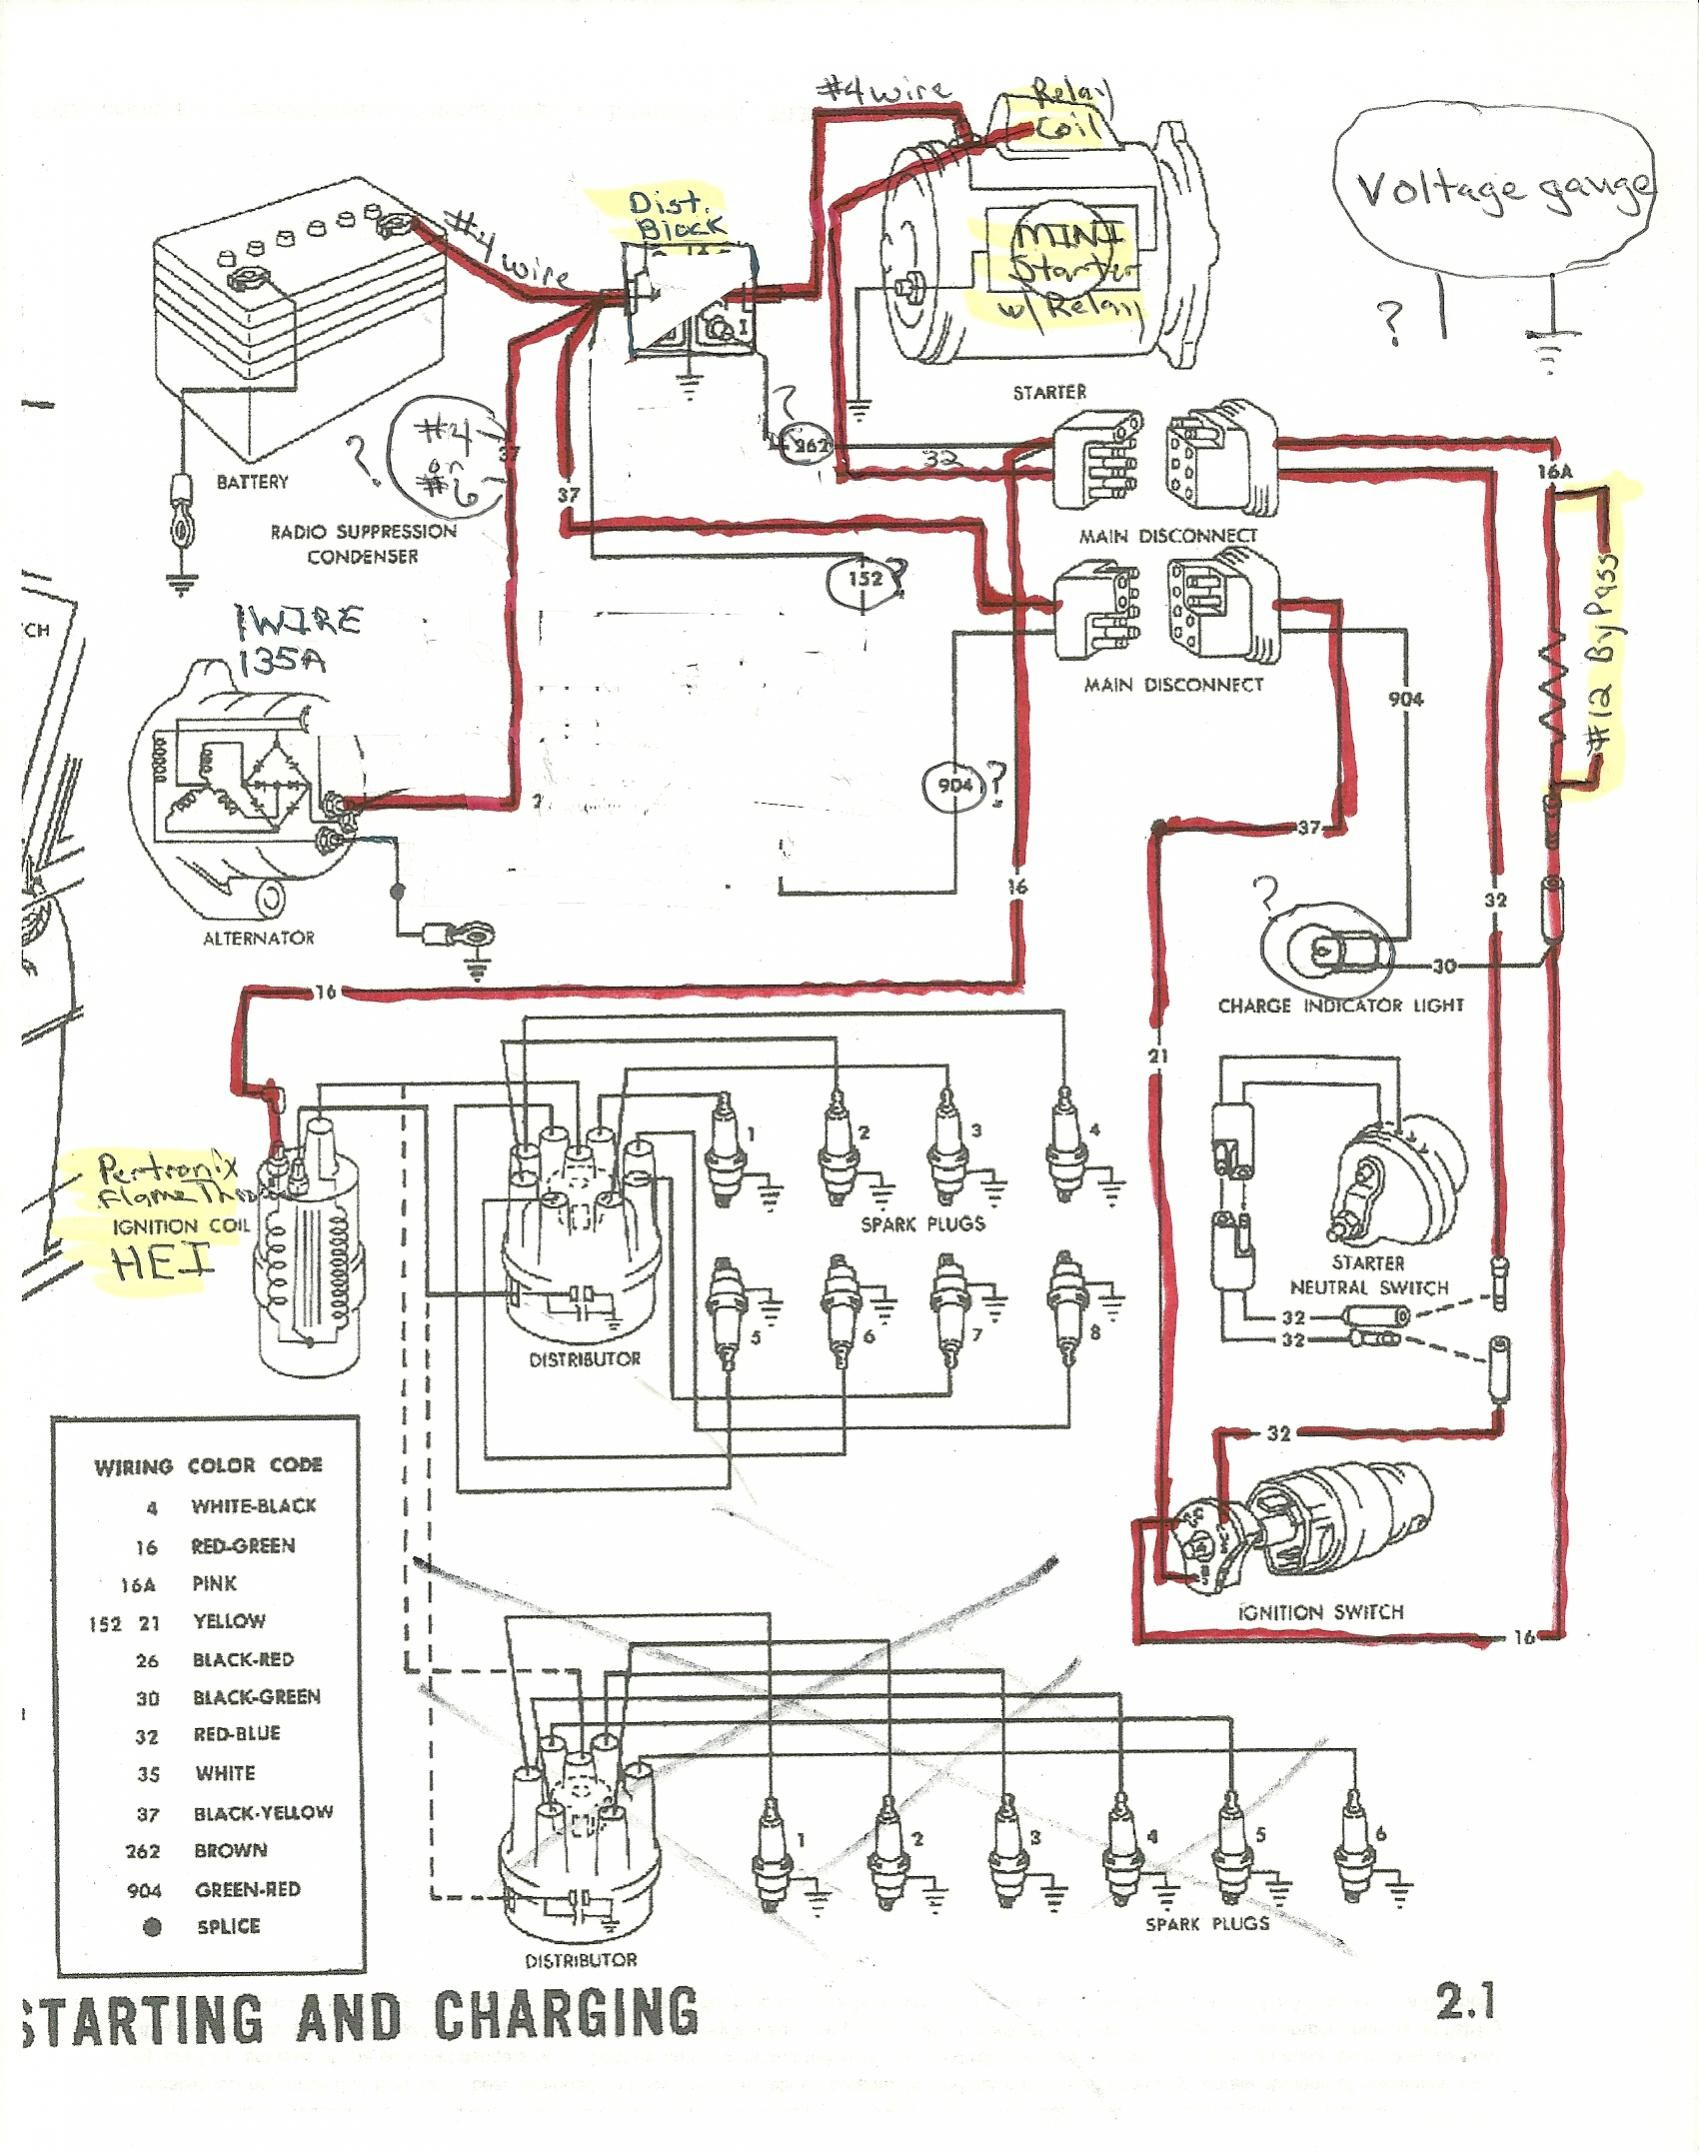 1965 ford mustang alternator wiring diagram on 1965 mustang wire rh qualiwood co wiring diagram for 1965 mustang 1965 Mustang Wiring Harness Diagram